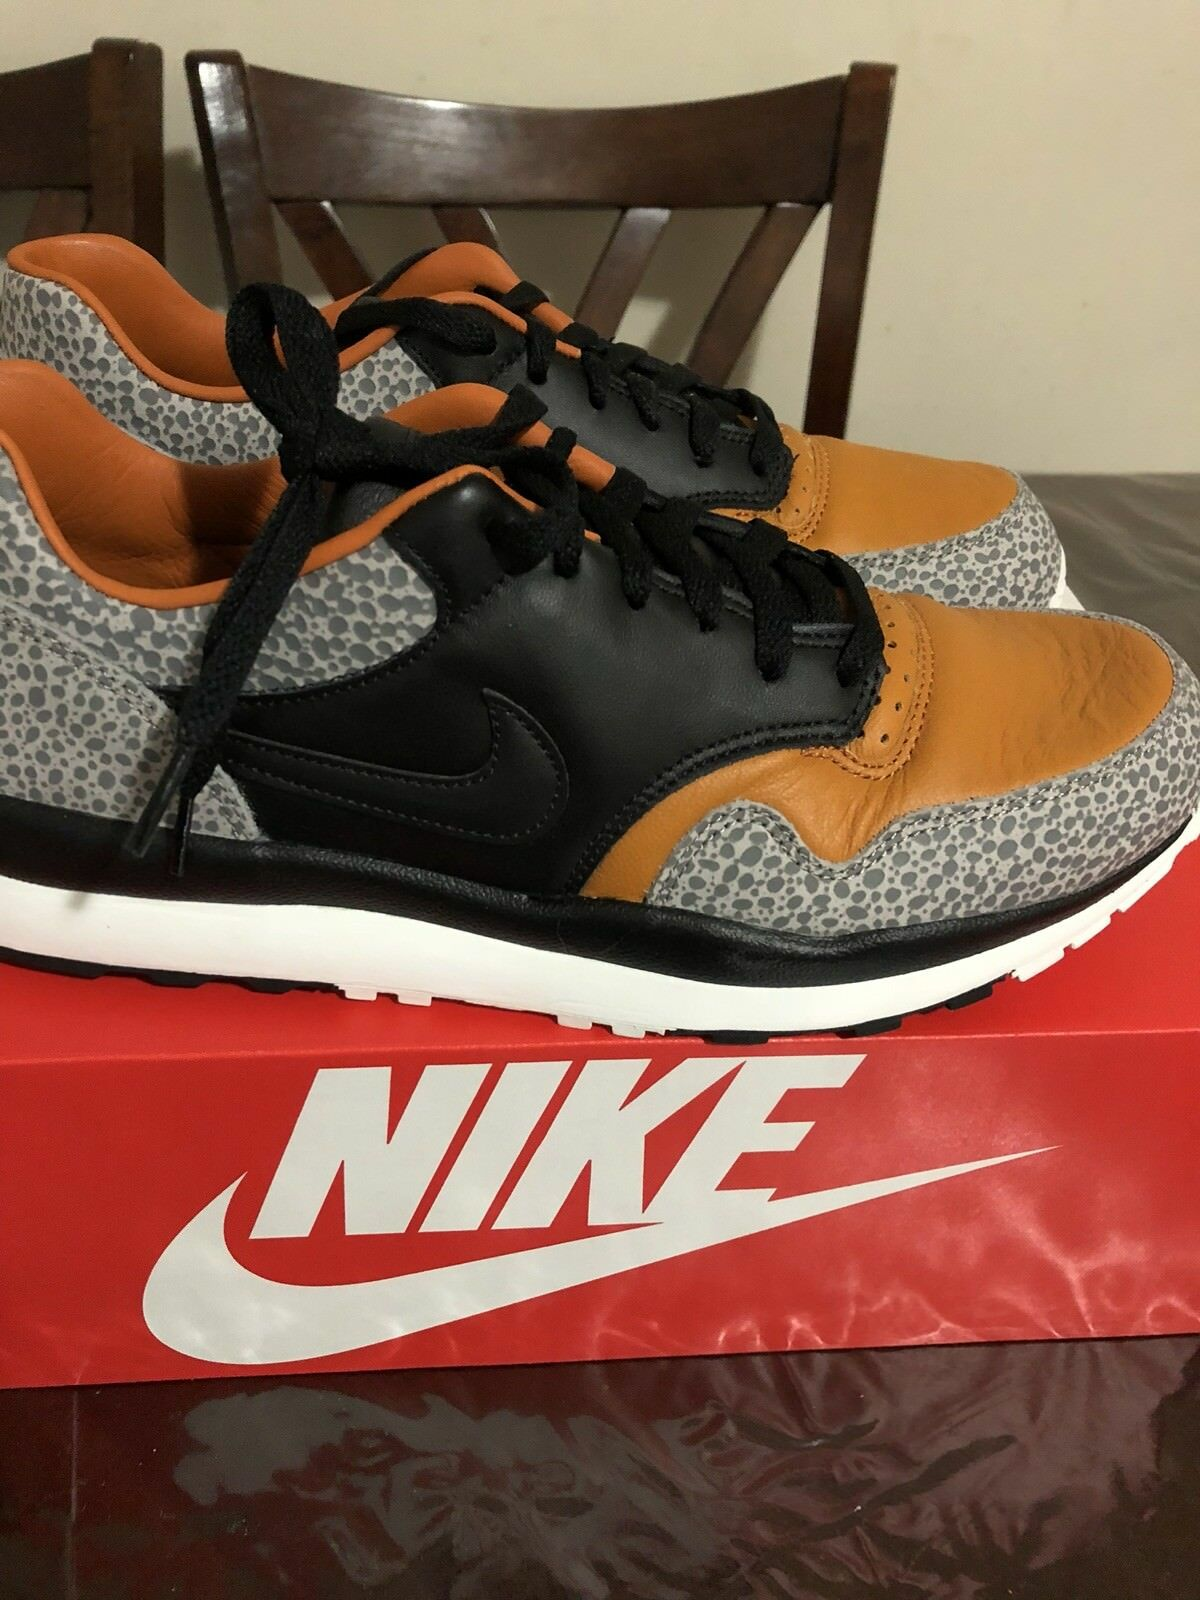 NIKE AIR SAFARI QS JUNGLE FLASHBACK SIZE 10 DS CONFIRMED Order SOLDOUT